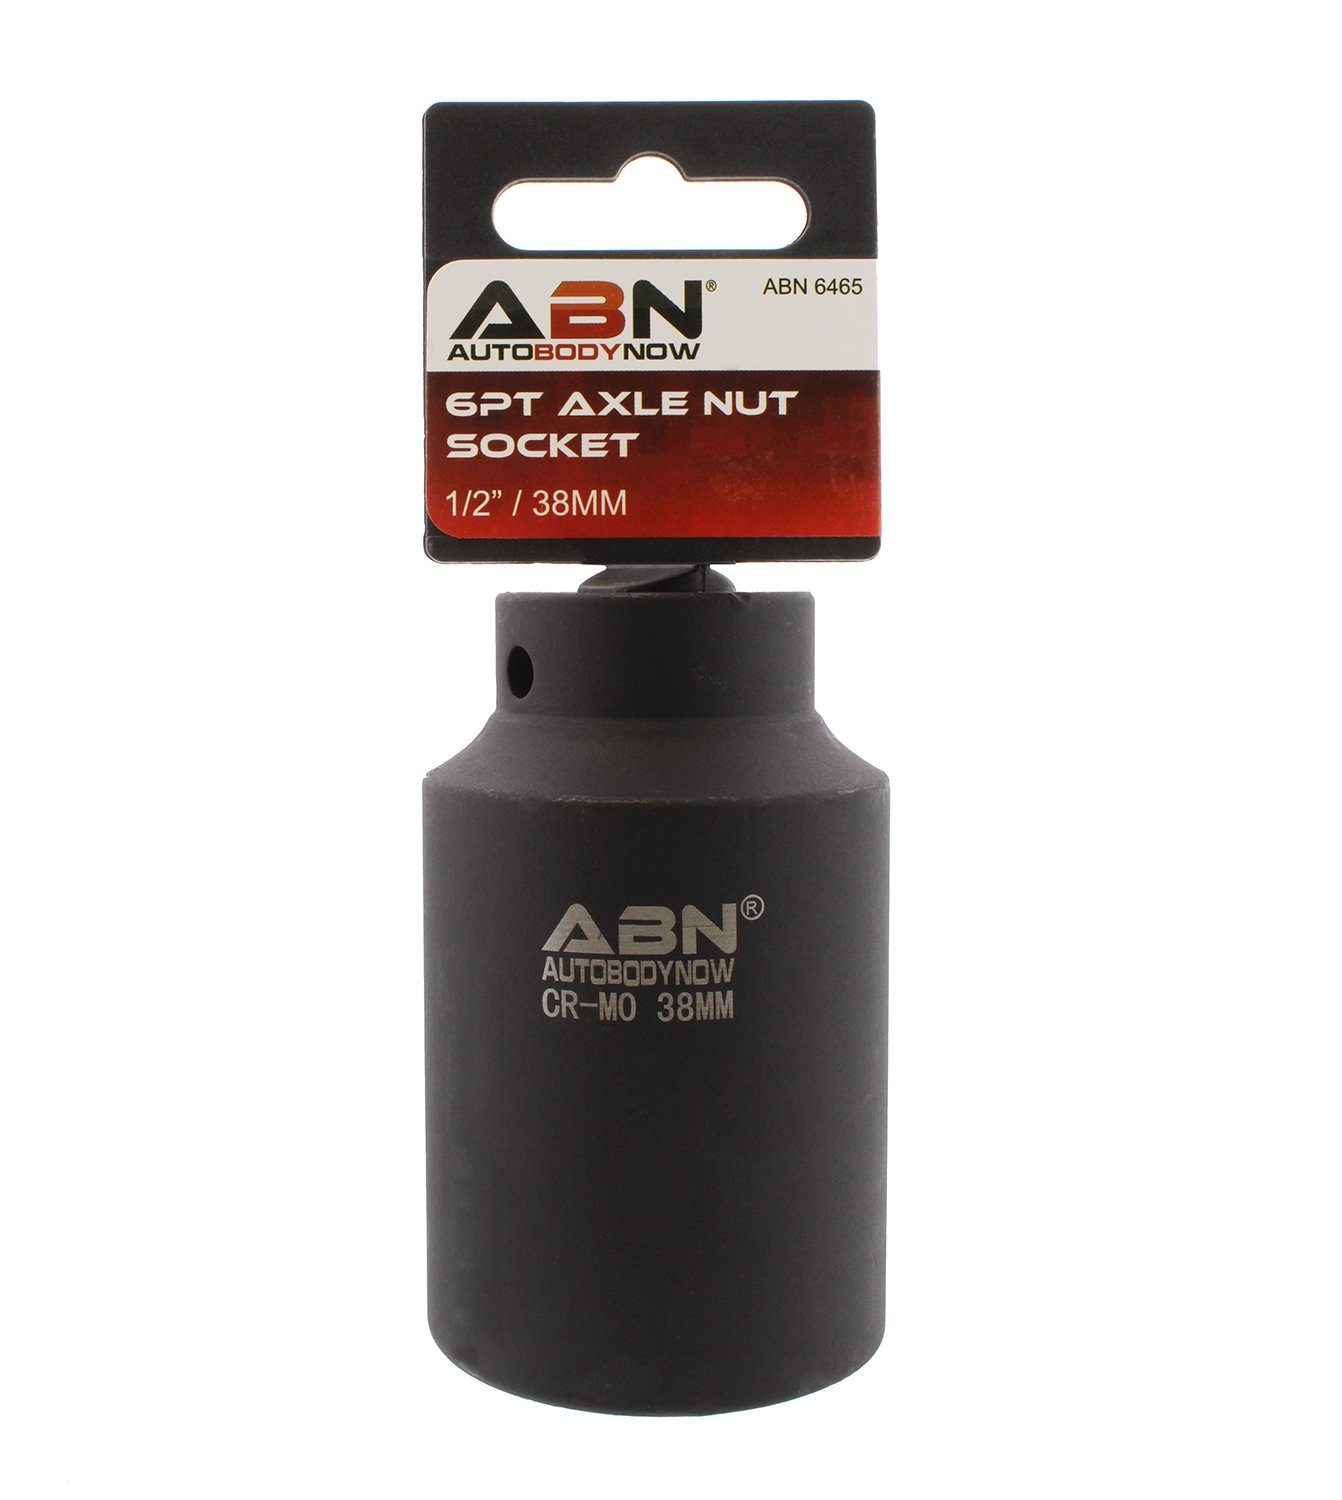 ABN Axle Nut Socket, 38mm, 1/2'' Inch Drive, 6 Point – Universal for All Vehicle 6pt Installation, Removal, Repair